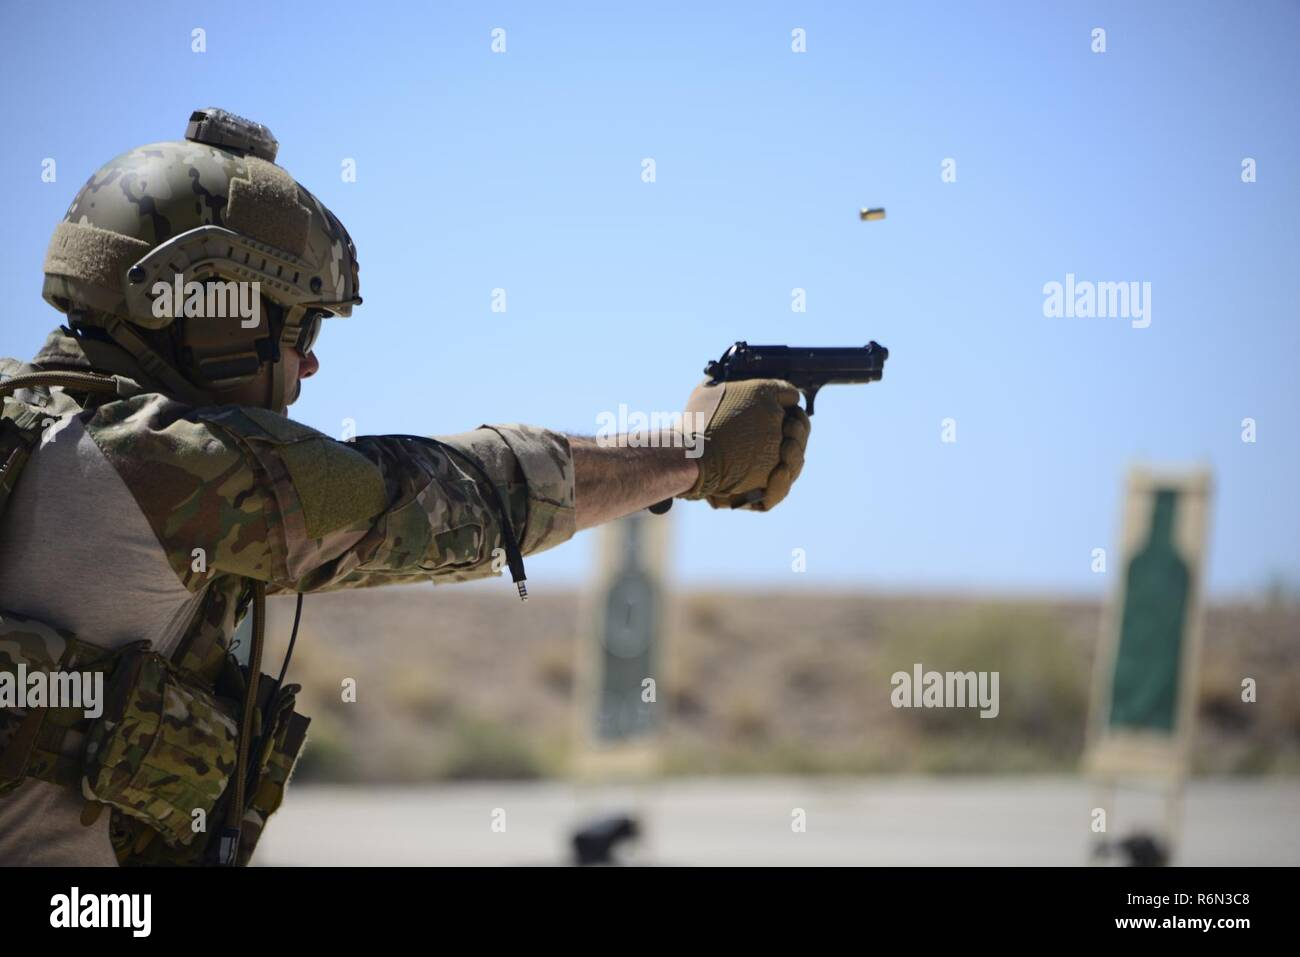 A U.S. Air Force pararescueman fires an M9 pistol at a target during the Guardian Angel Mission Qualification Training course at Davis-Monthan Air Force Base, Ariz., May 17, 2017. The MQT is a 90 day course that takes pararescuemen who have completed Air Education and Training Command schooling and helps them achieve their 5-level qualification. - Stock Image